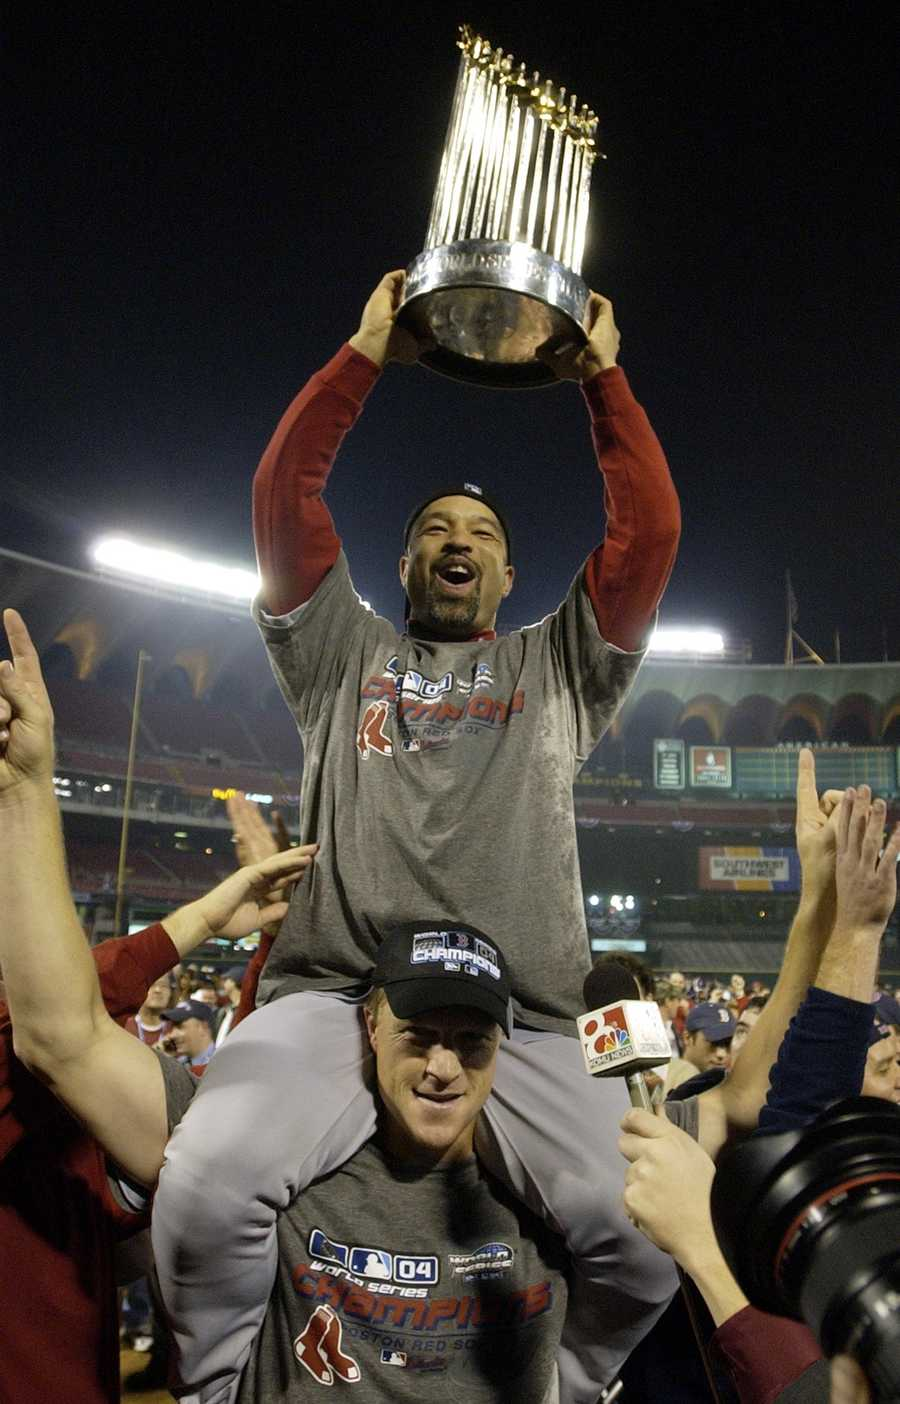 Boston Red Sox's Dave Roberts hoists the World Series trophy while riding the shoulders of pitcher Mike Timlin after winning the World Series with a 3-0 win over the St. Louis Cardinals in Game 4 of the World Series Wednesday, Oct. 27, 2004, in St. Louis.